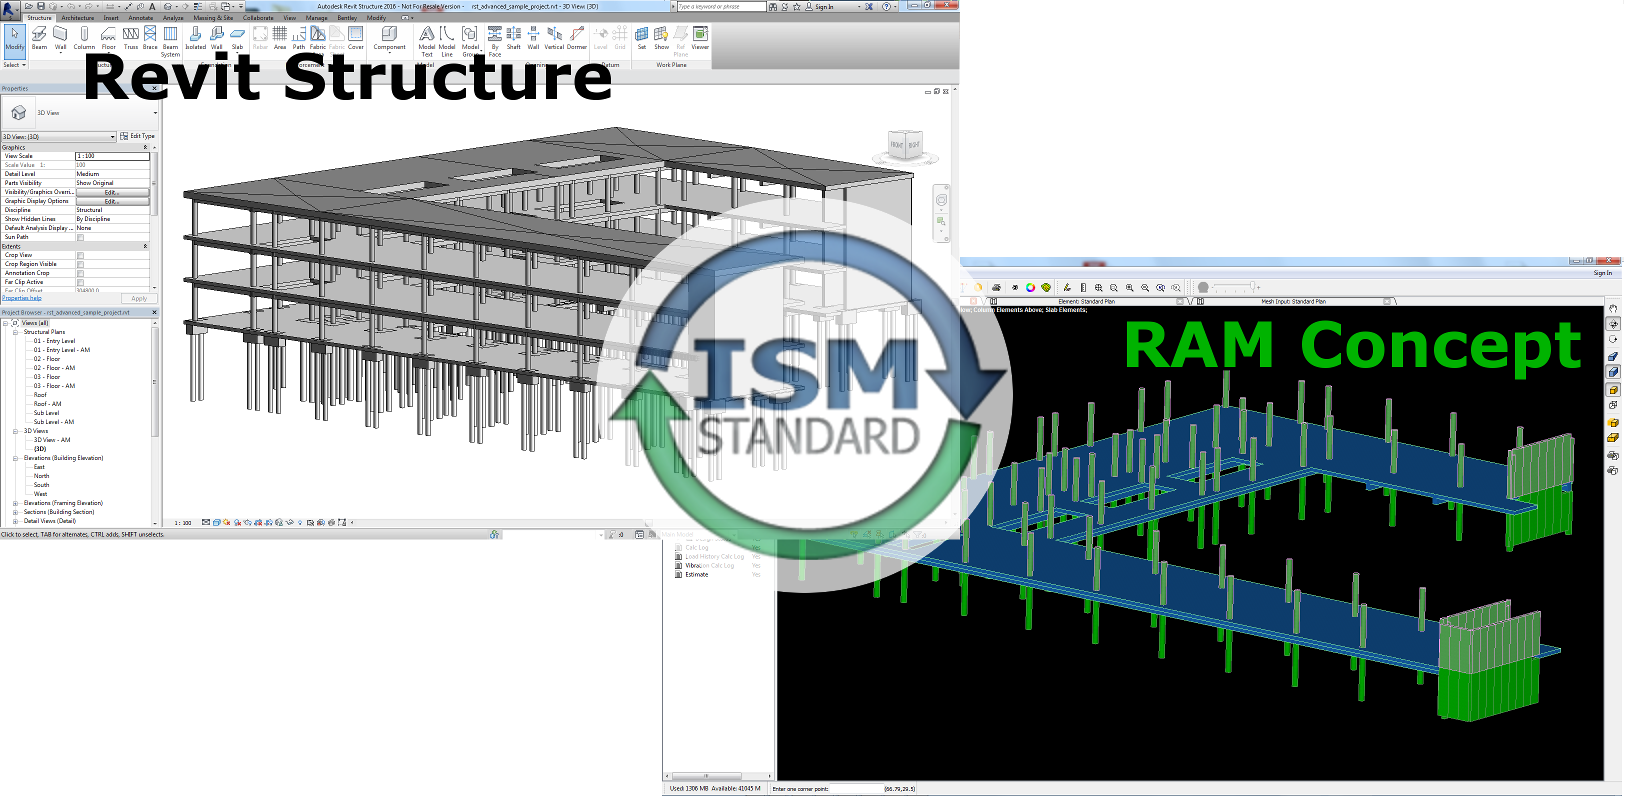 RAM Concept Interoperability with Revit - Recomputing Nodes